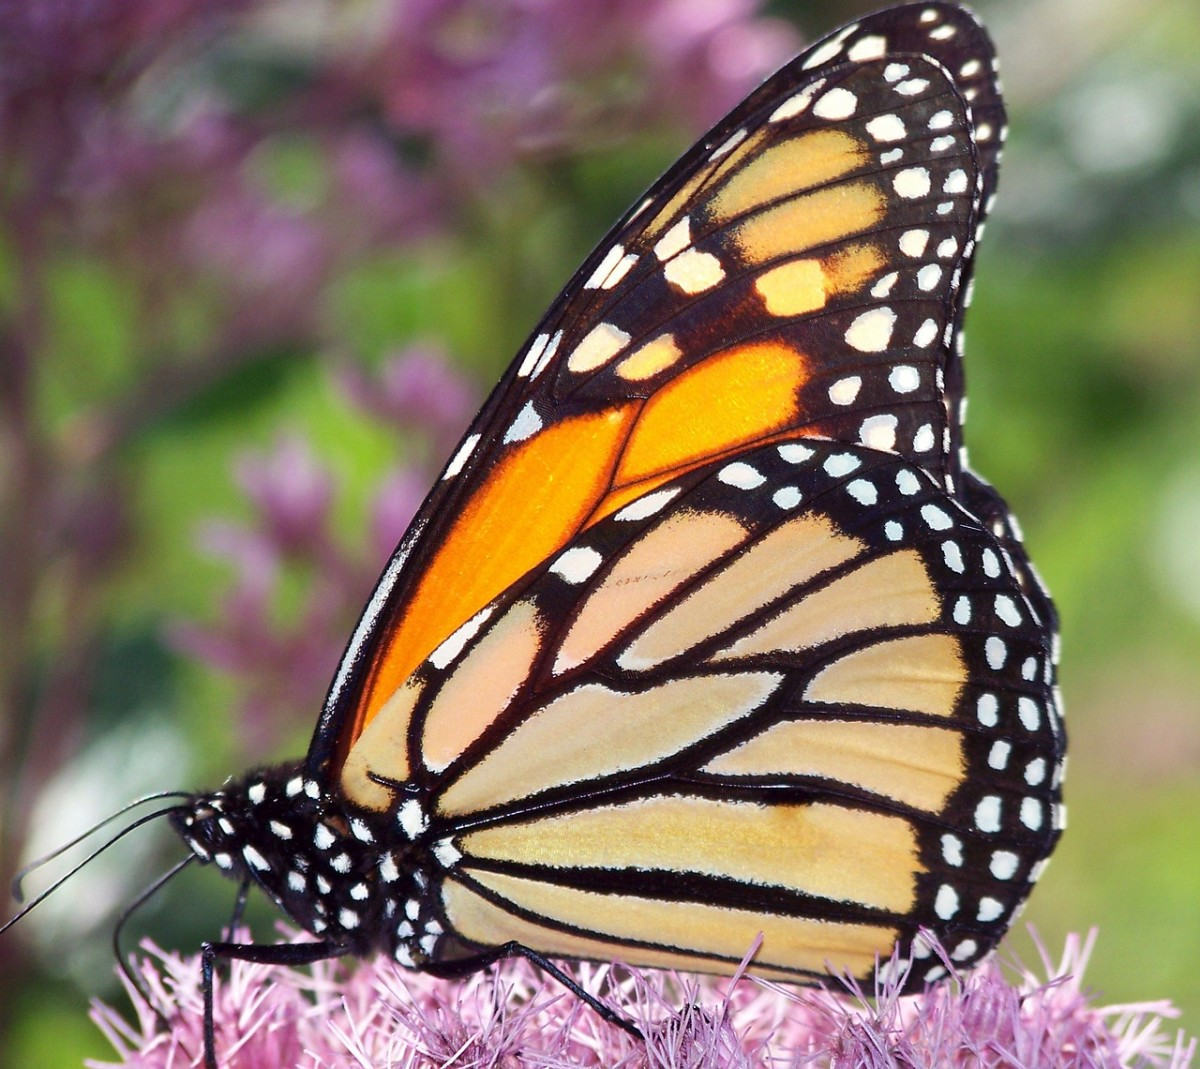 Butterfly Identification Guide: 22 Types of Butterflies (With Photos)